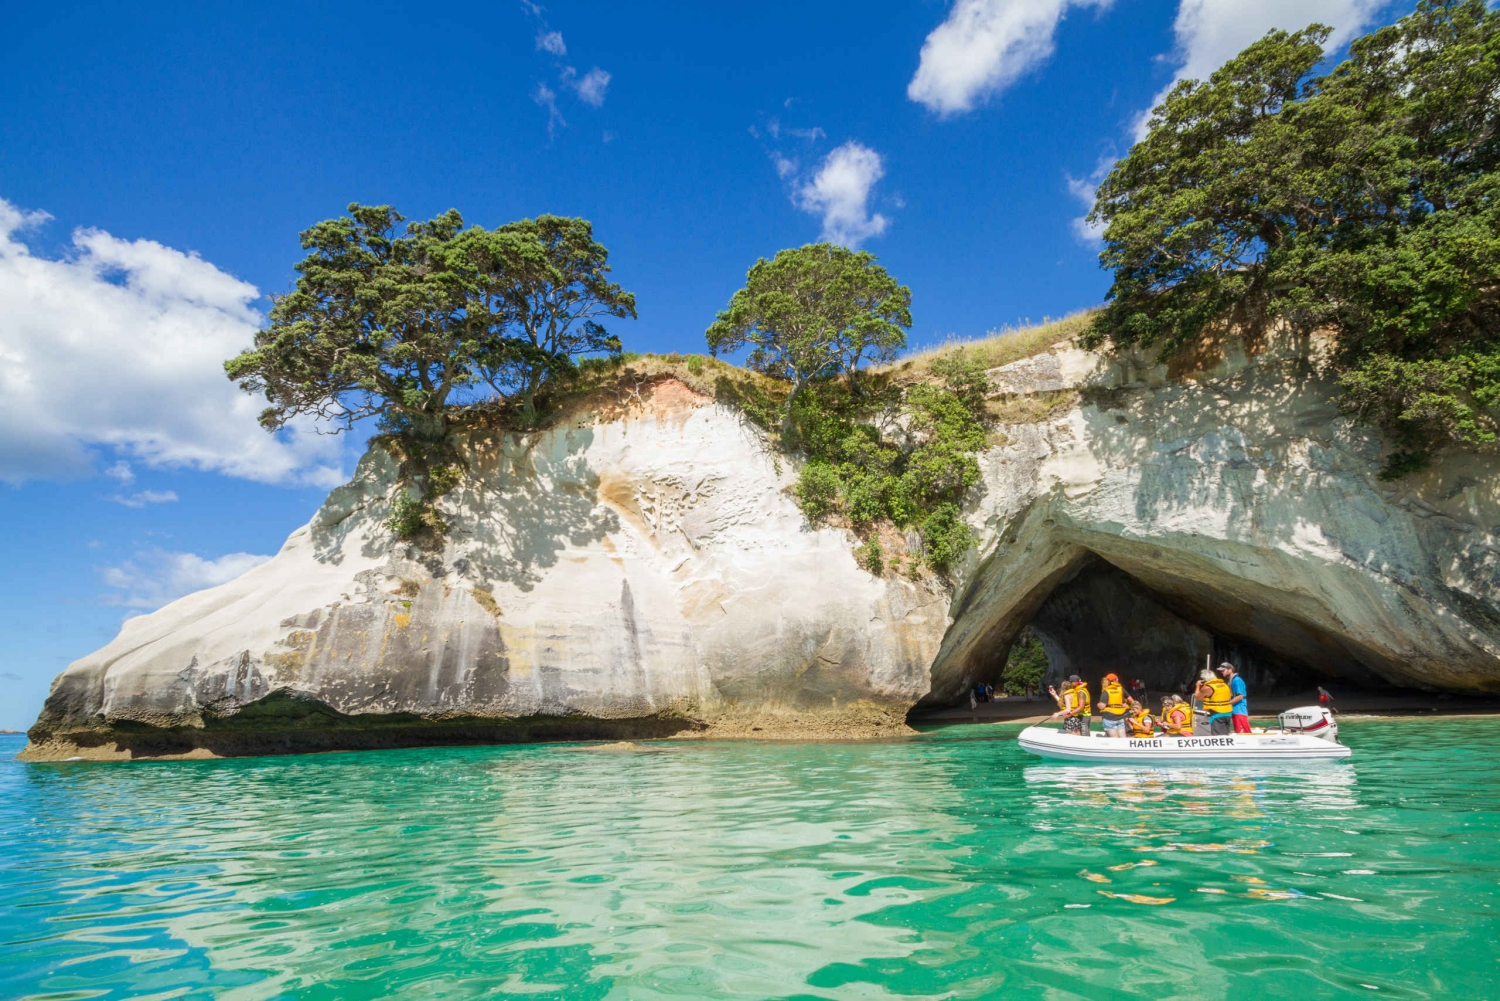 From Coromandel and Cathedral Cove Tour